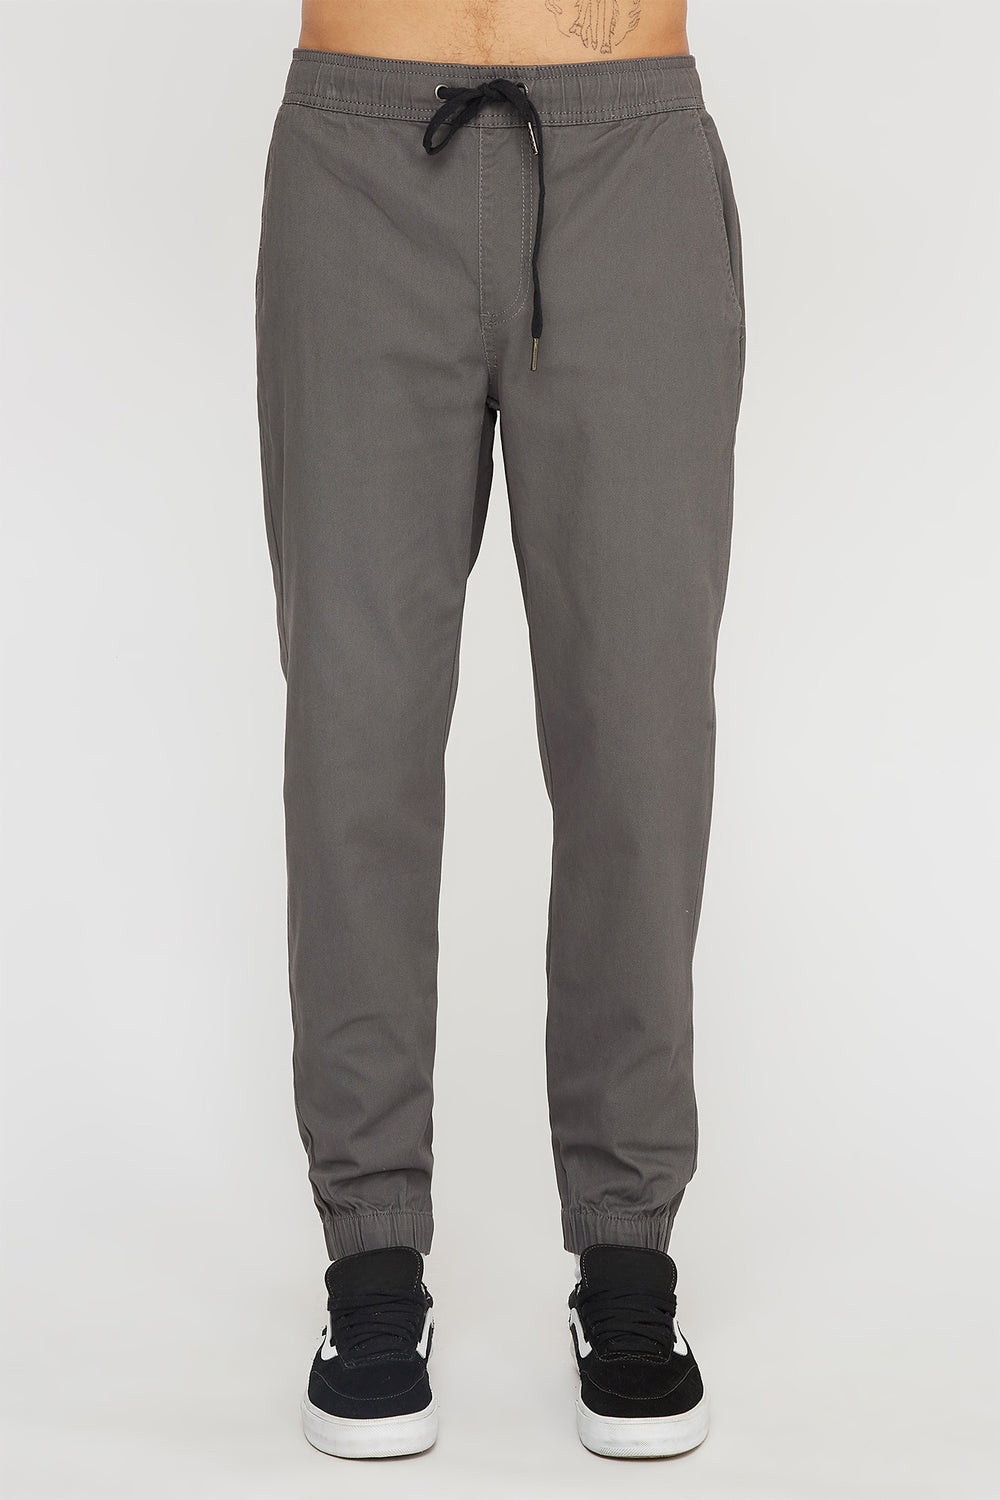 West49 Mens Solid Twill Jogger Dark Grey